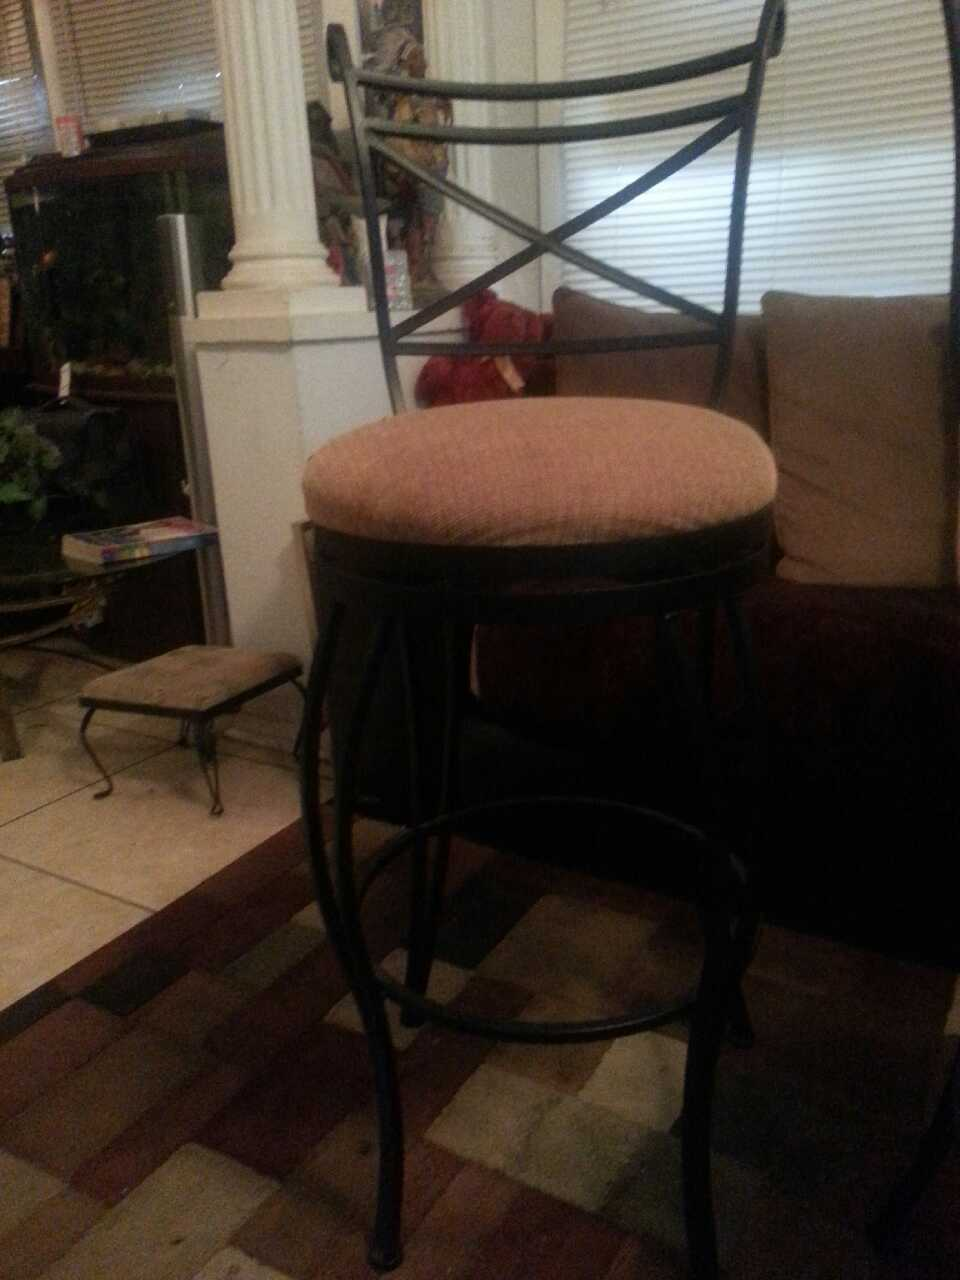 letgo Solid steel bar stools in Tampa FL : ab4e61af2f81187d5f08dfdcf6853151 from us.letgo.com size 960 x 1280 jpeg 68kB